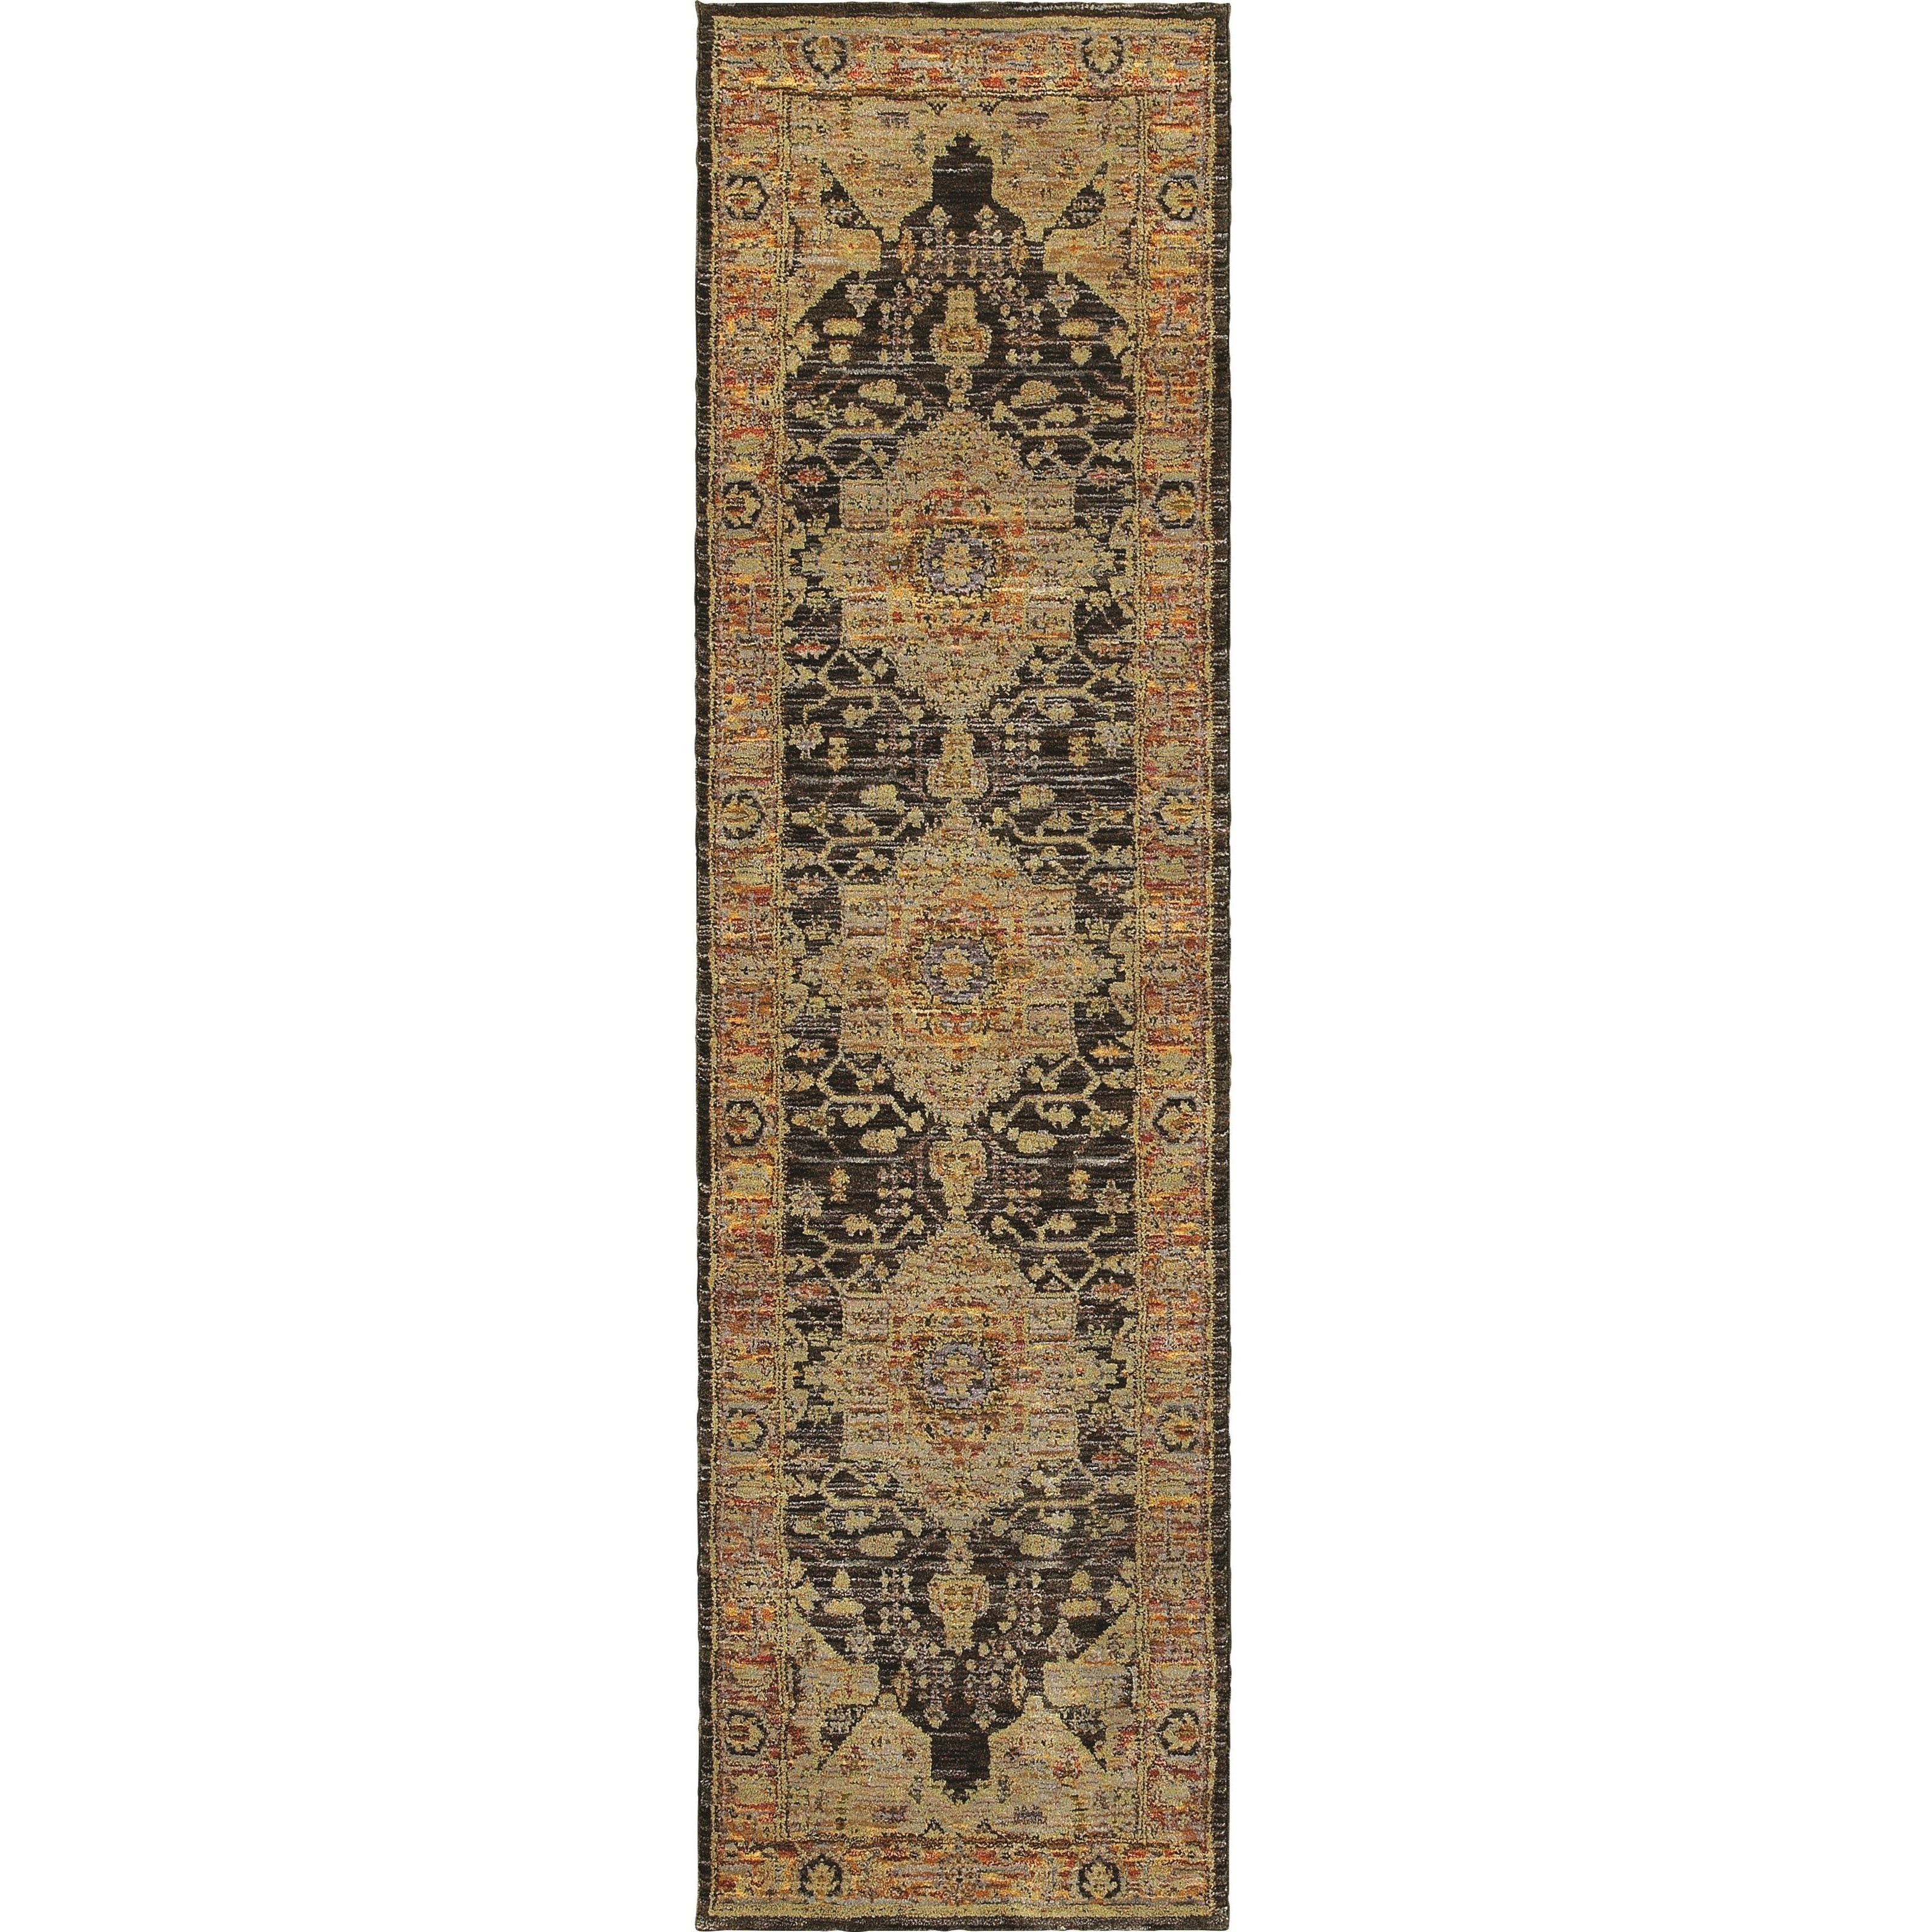 """Andorra 2' 3"""" X  8' 0"""" Traditional Gold/ Grey Runner by Oriental Weavers at Steger's Furniture"""